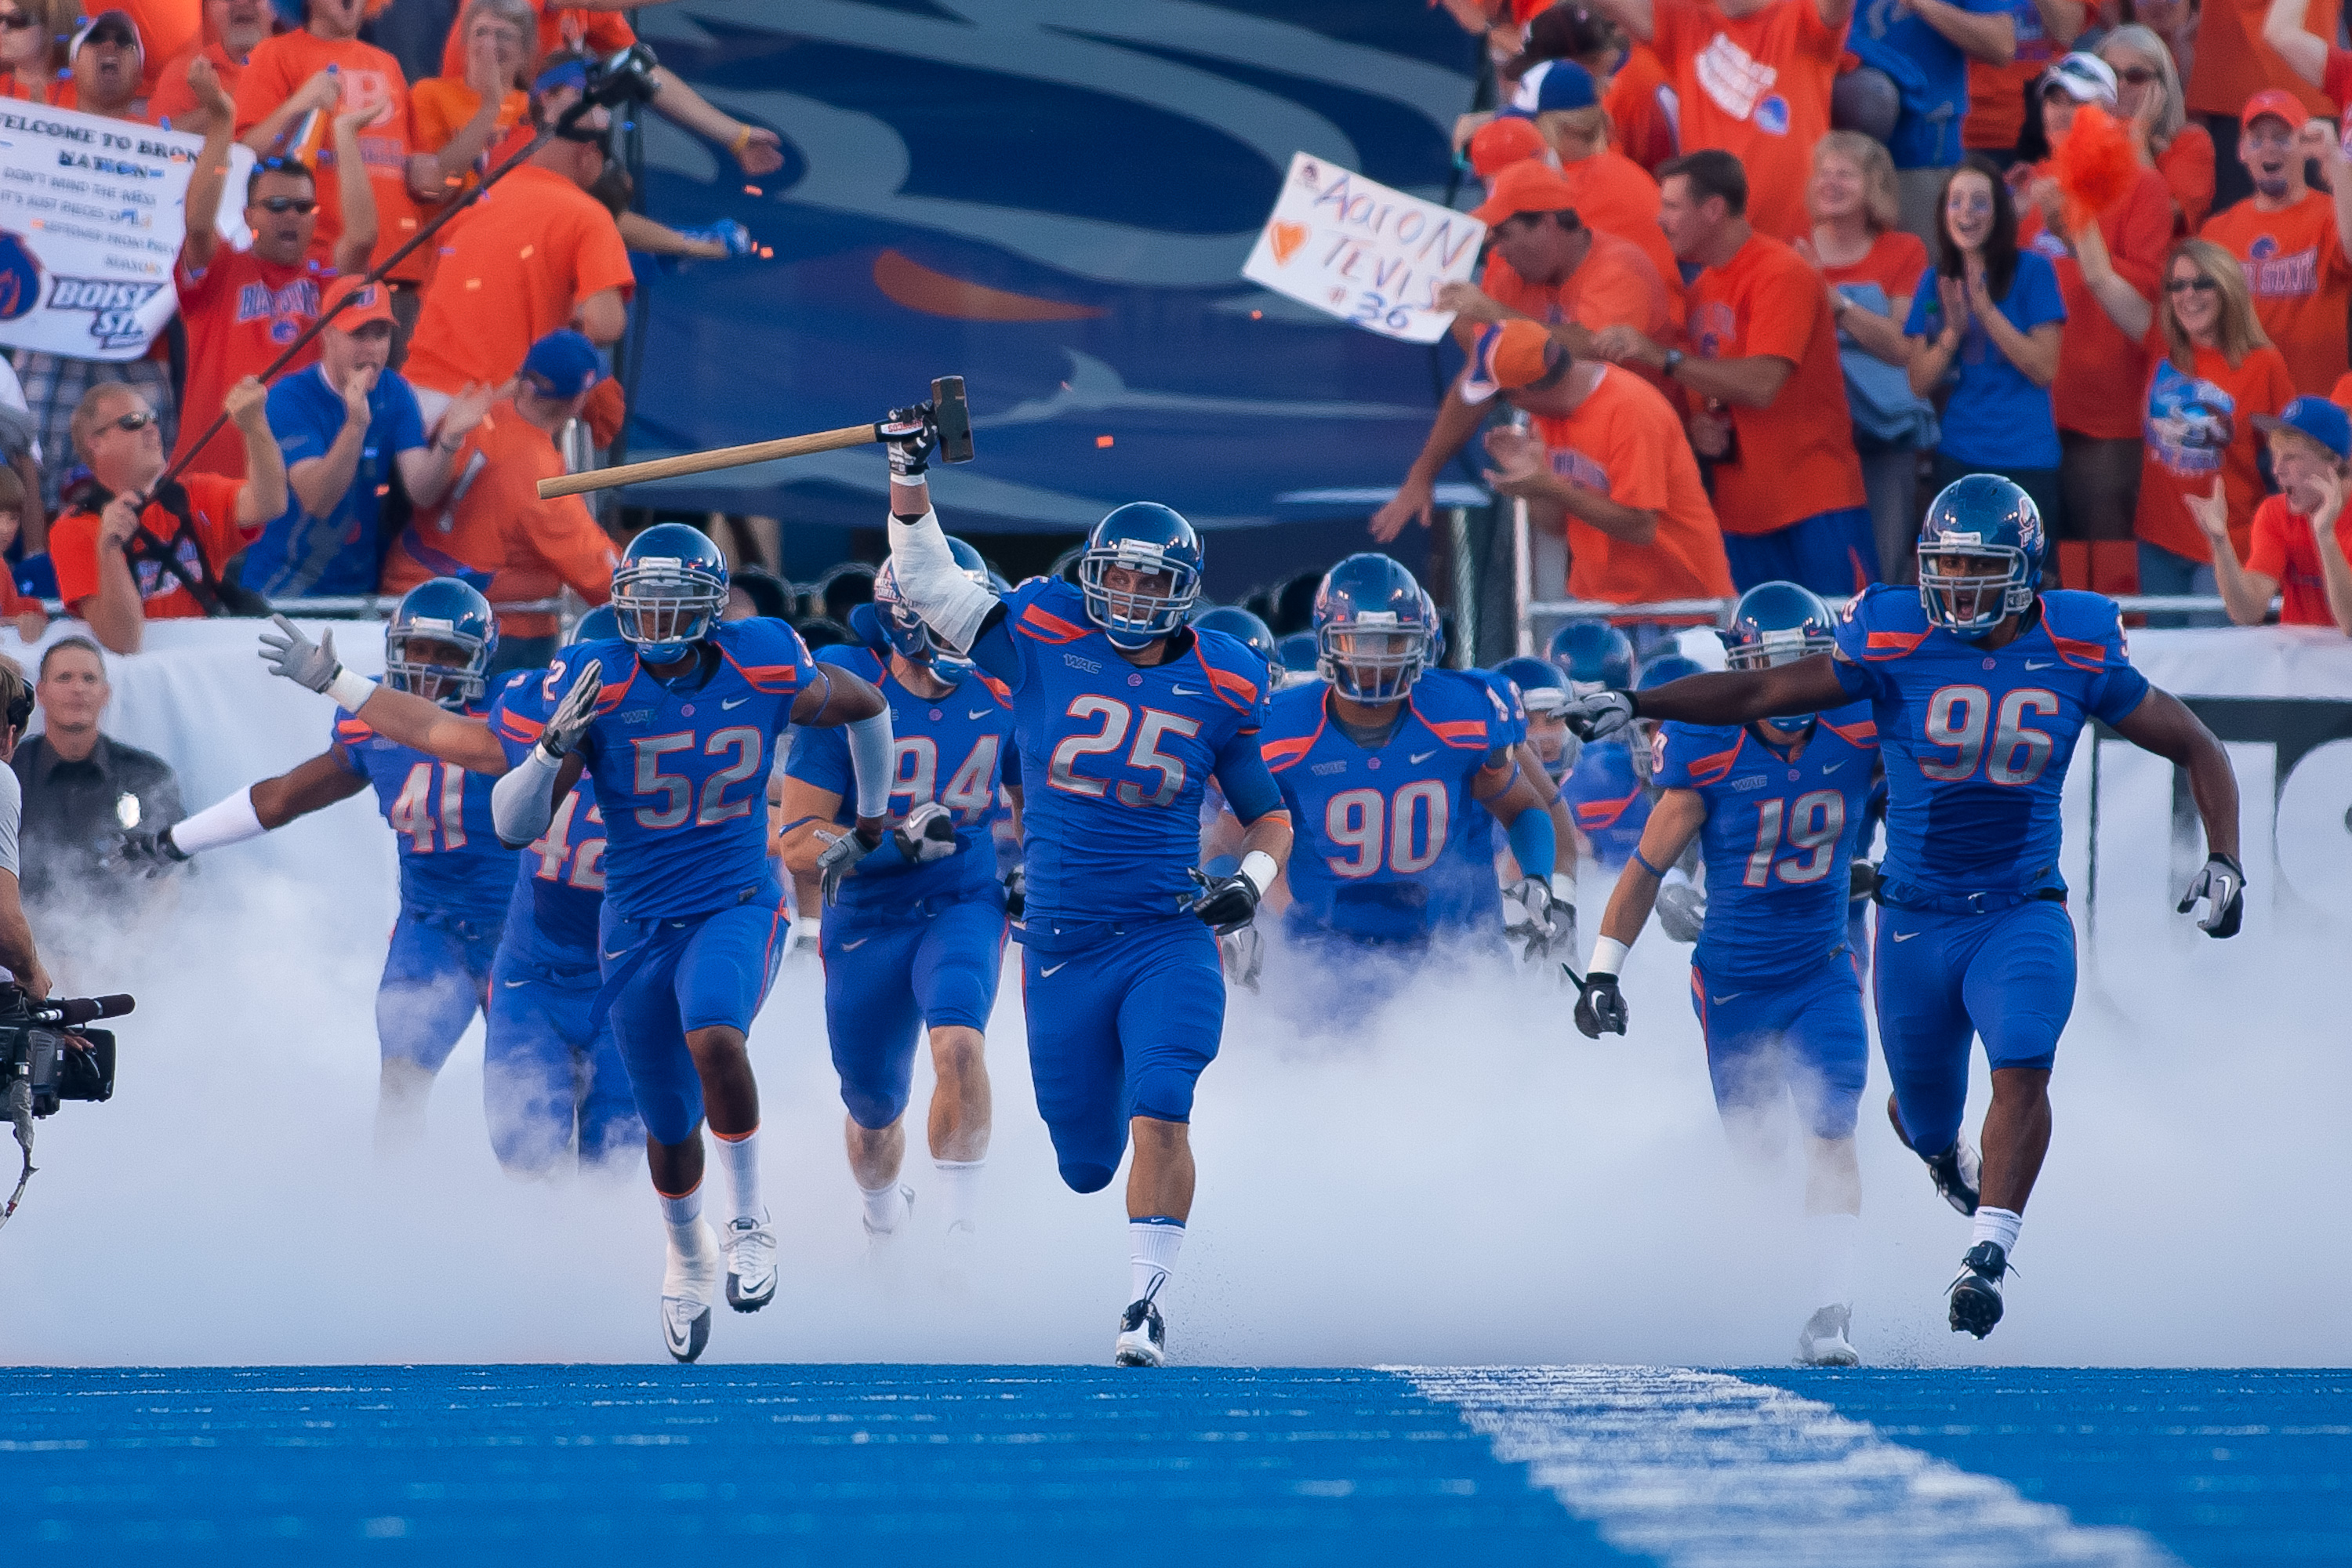 BOISE, ID - SEPTEMBER 25:  Linebacker Billy Derome #25 of the Boise State Broncos leads his team onto the field before the game against the Oregon State Beavers at Bronco Stadium on September 25, 2010 in Boise, Idaho.  (Photo by Otto Kitsinger III/Getty I